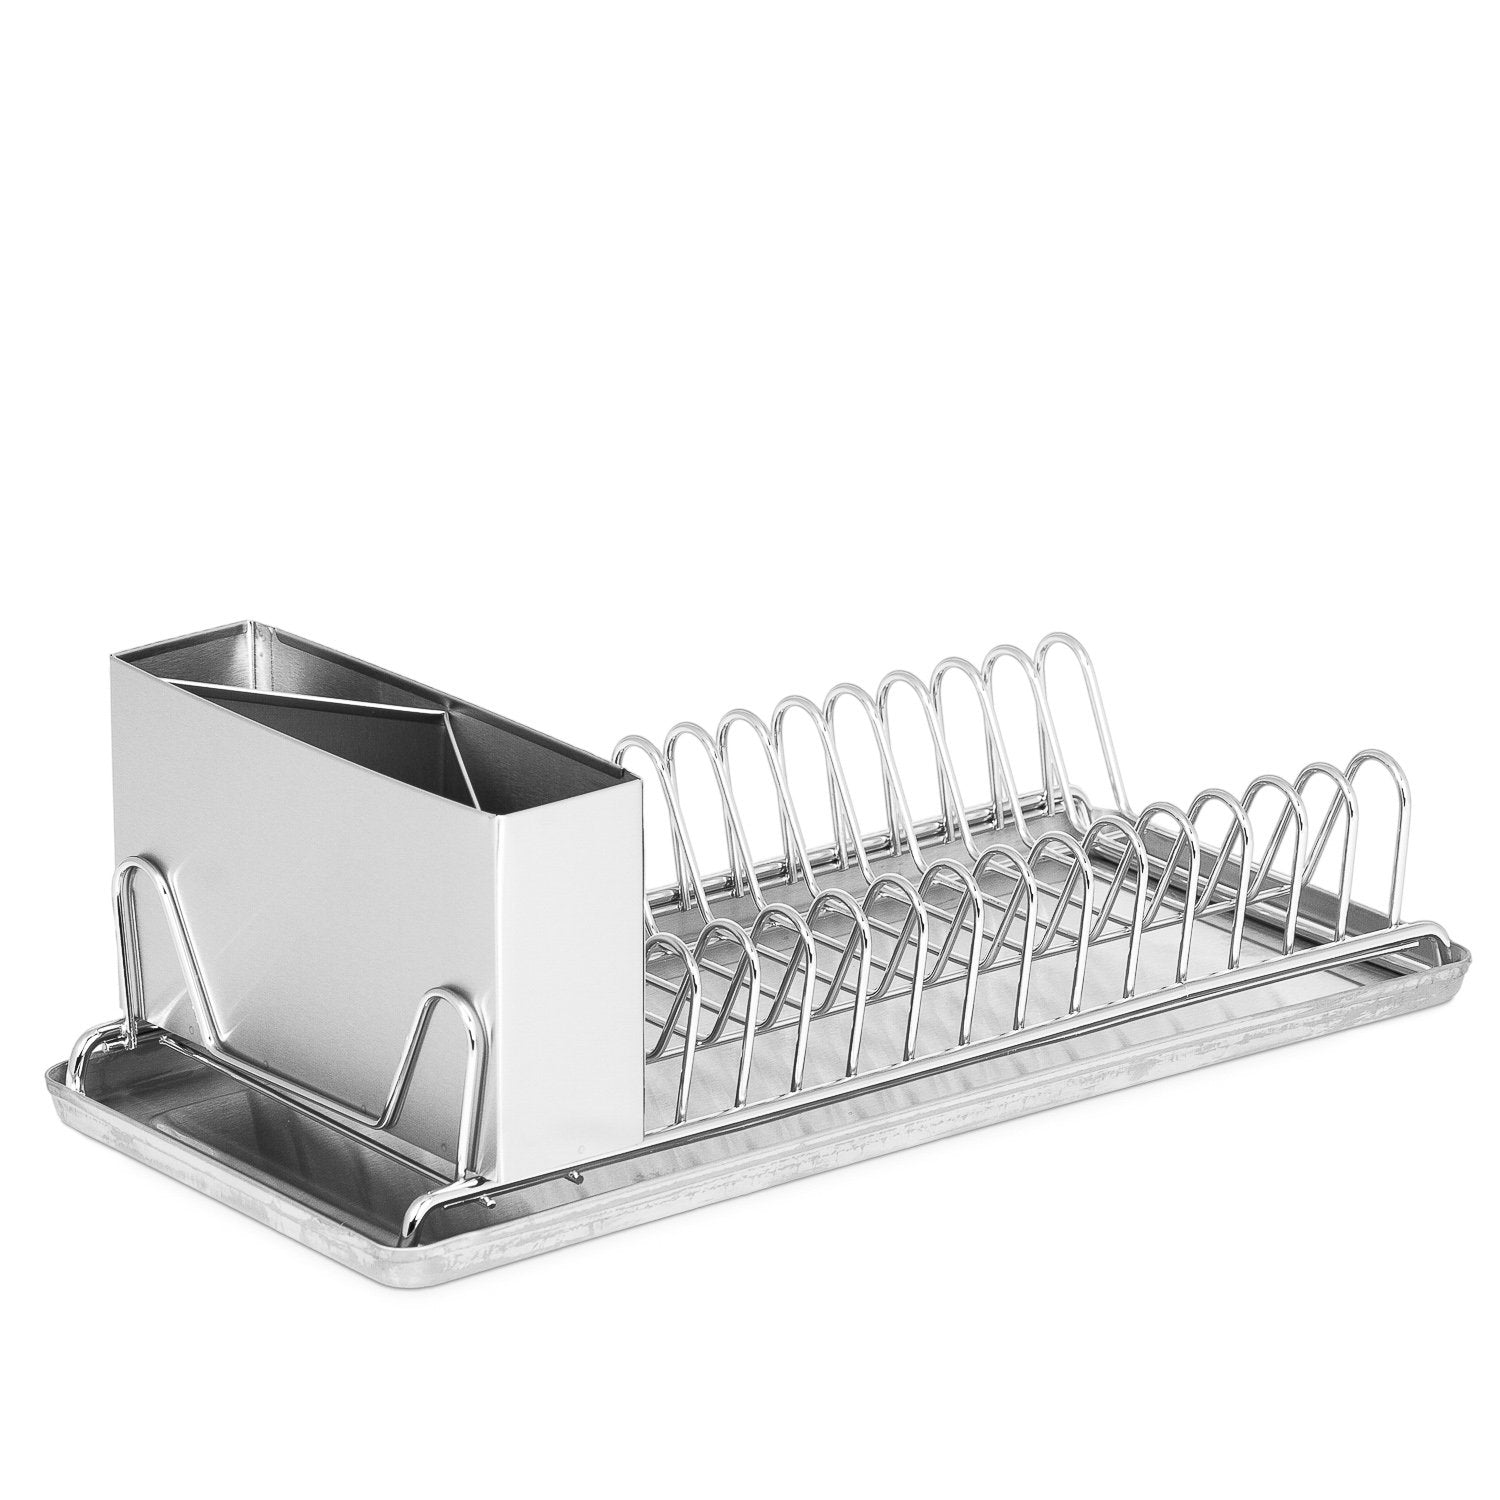 Dish Drying Rack With Drain Board – Compact with Stainless Steel Utensil Holder and Dish Rack Drainboard – RV Dish Drying Rack - Dish Racks for Counter, In Sink Drying Rack